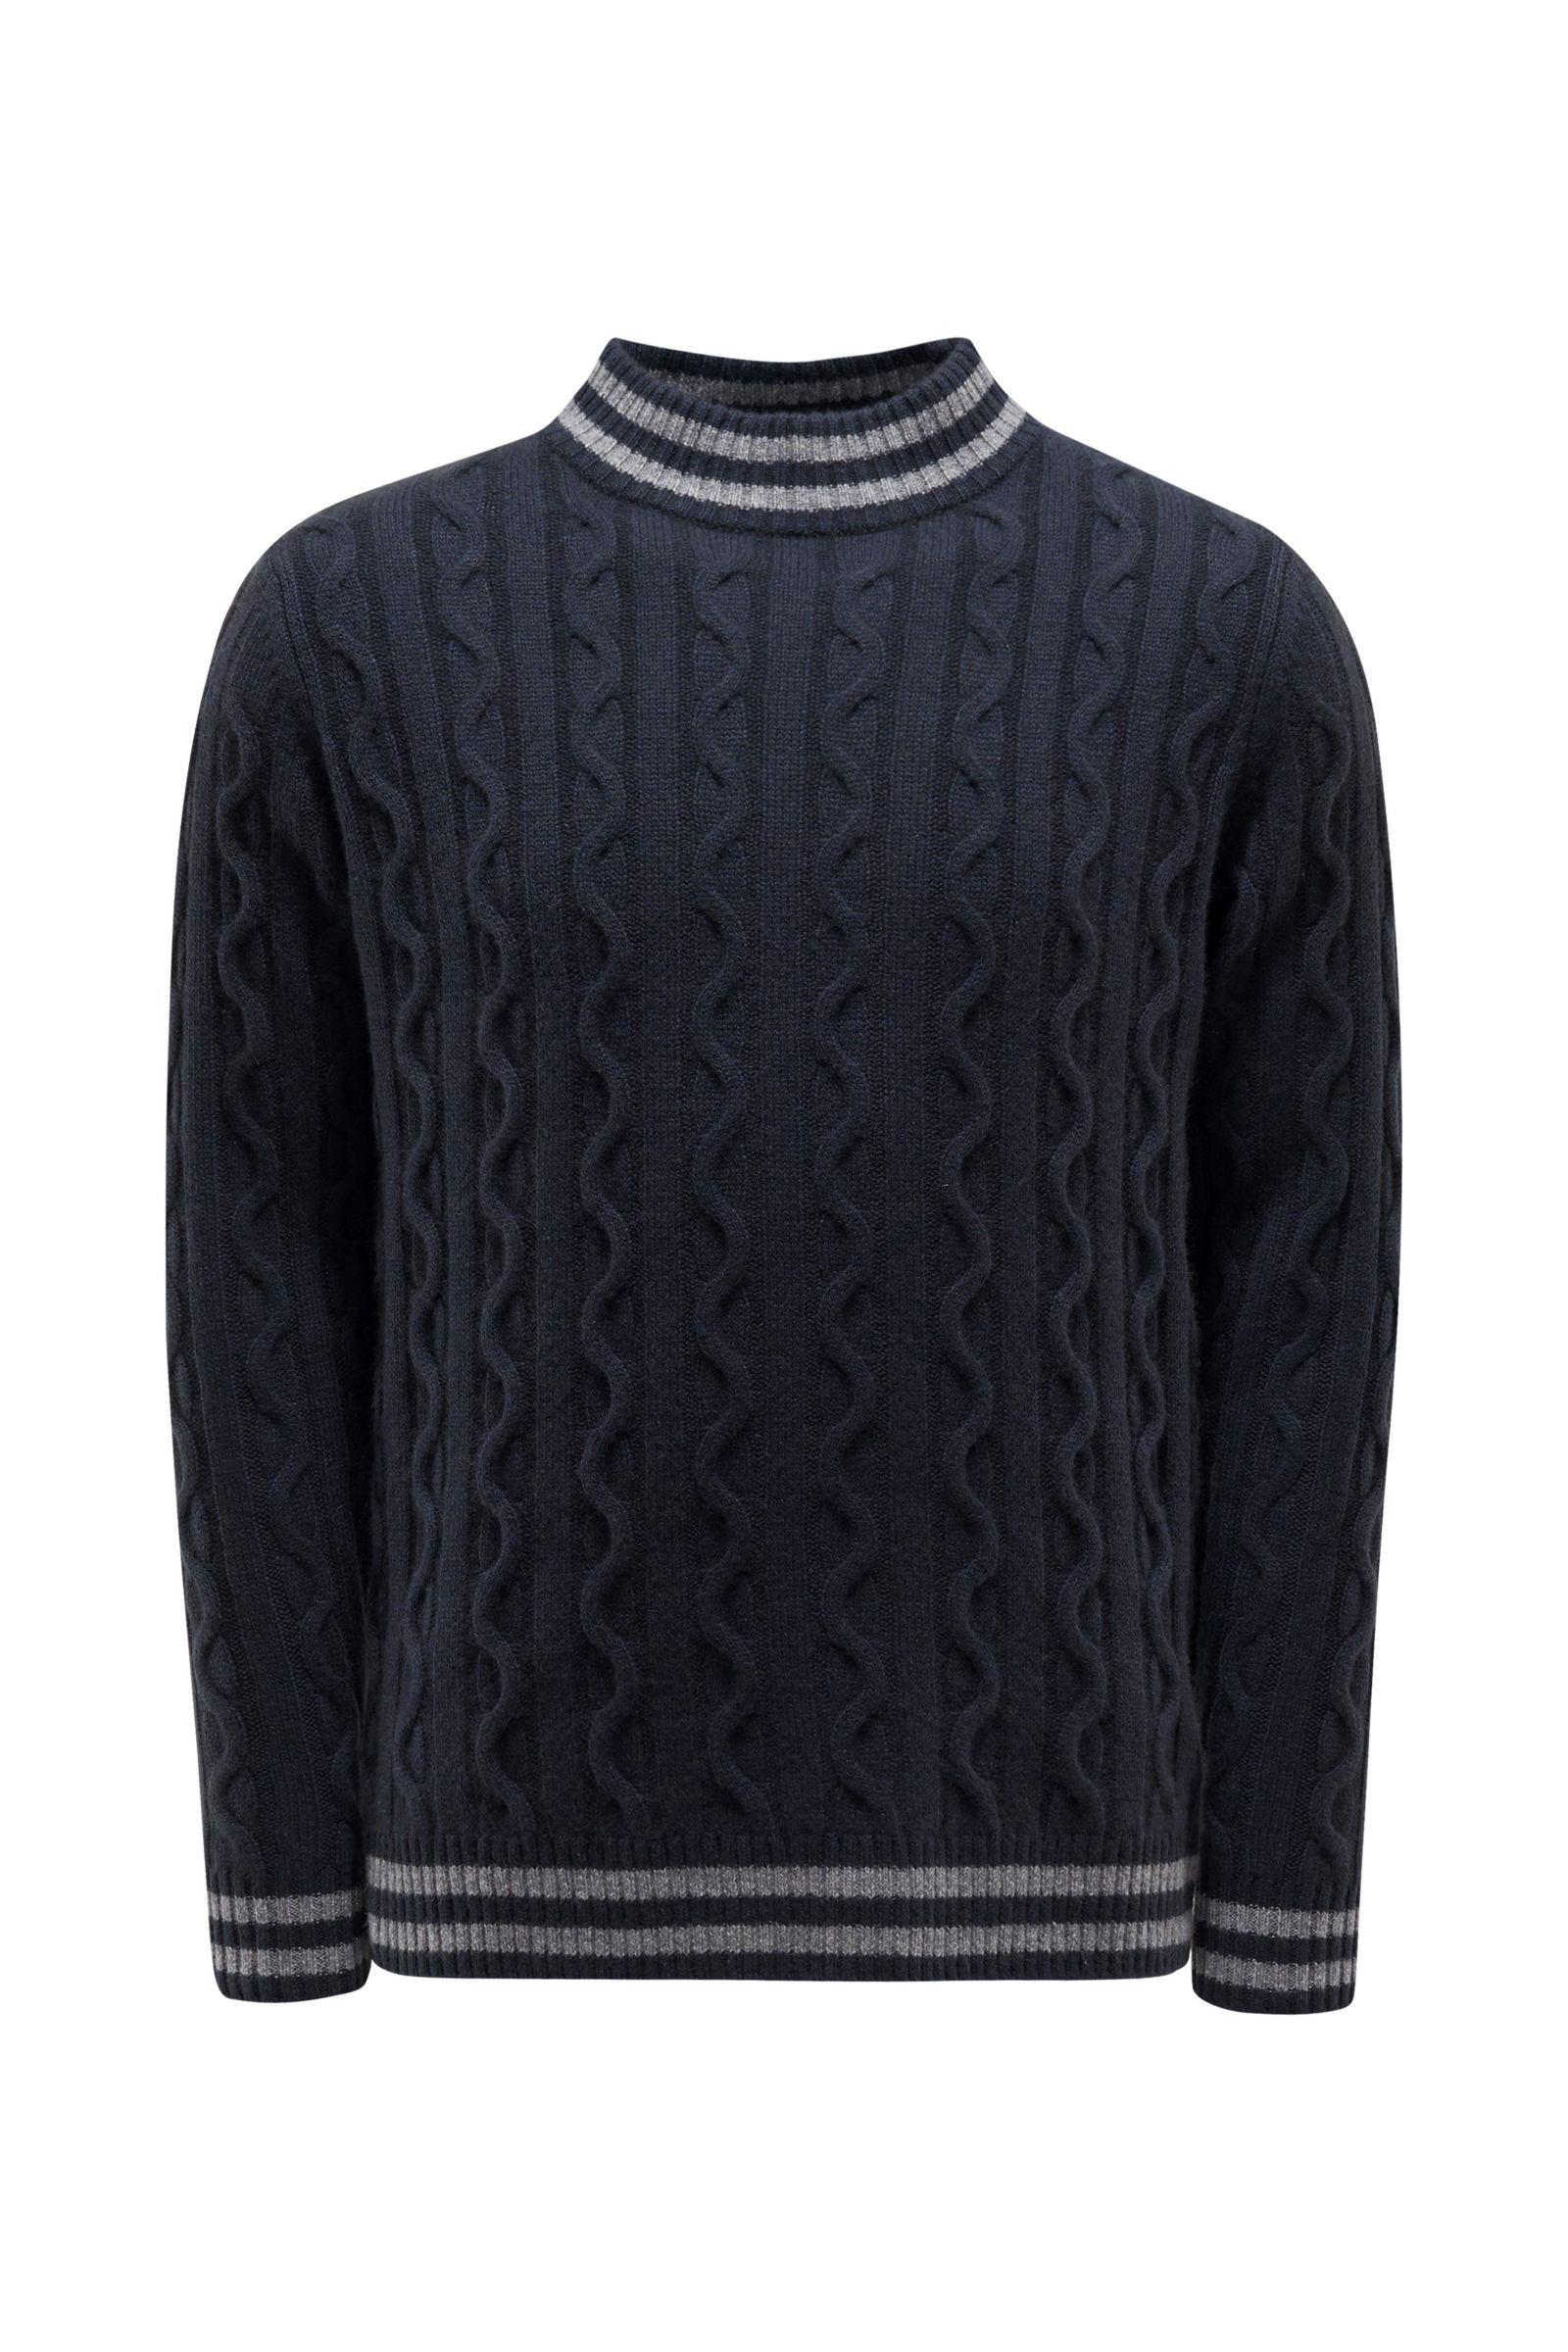 Baby-Cashmere Pullover navy